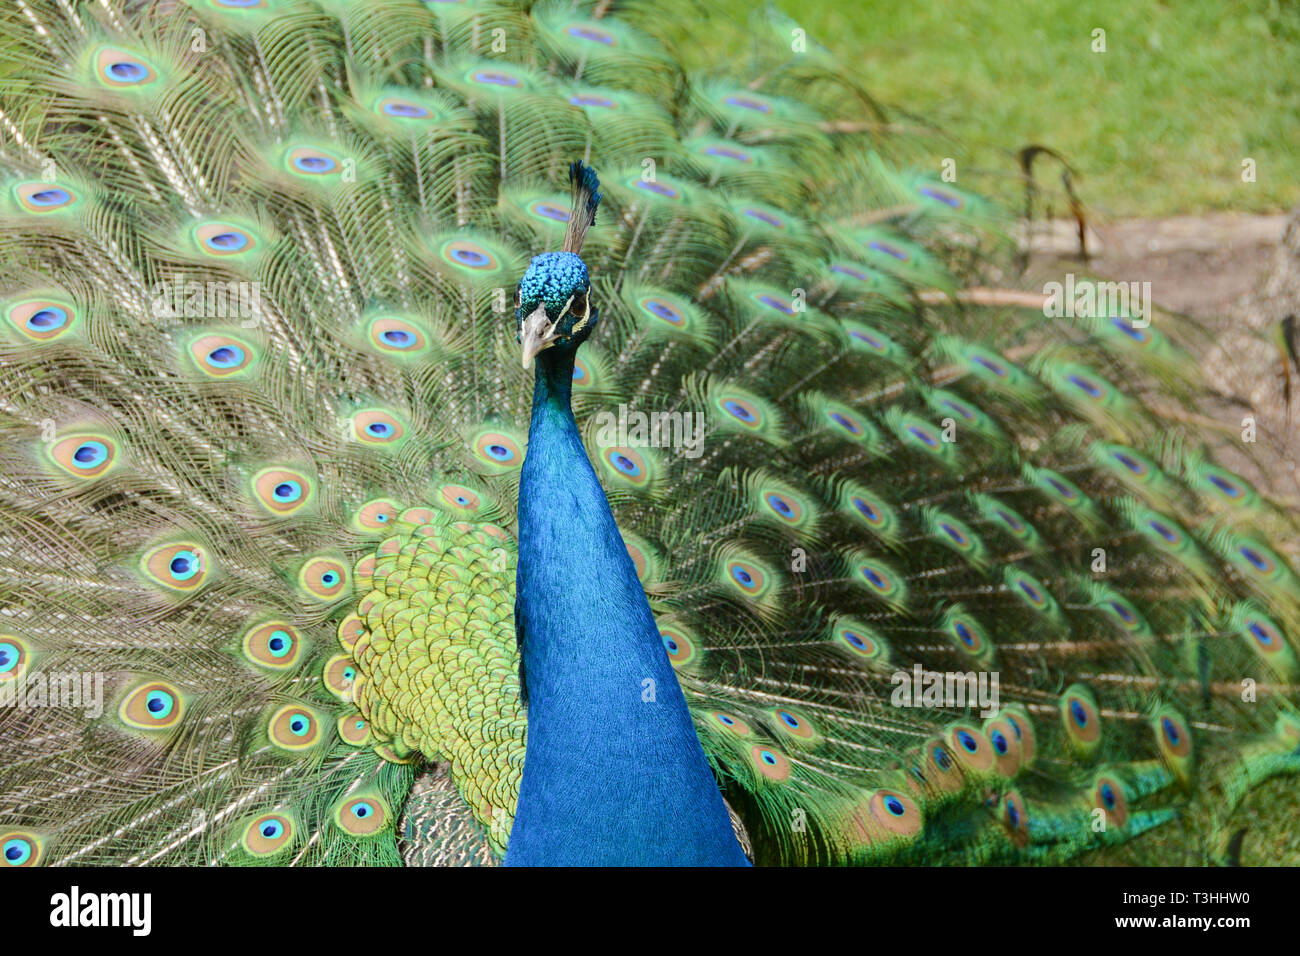 An Indian Peacock (Peafowl) in display mode in Holland Park, London, UK - Stock Image